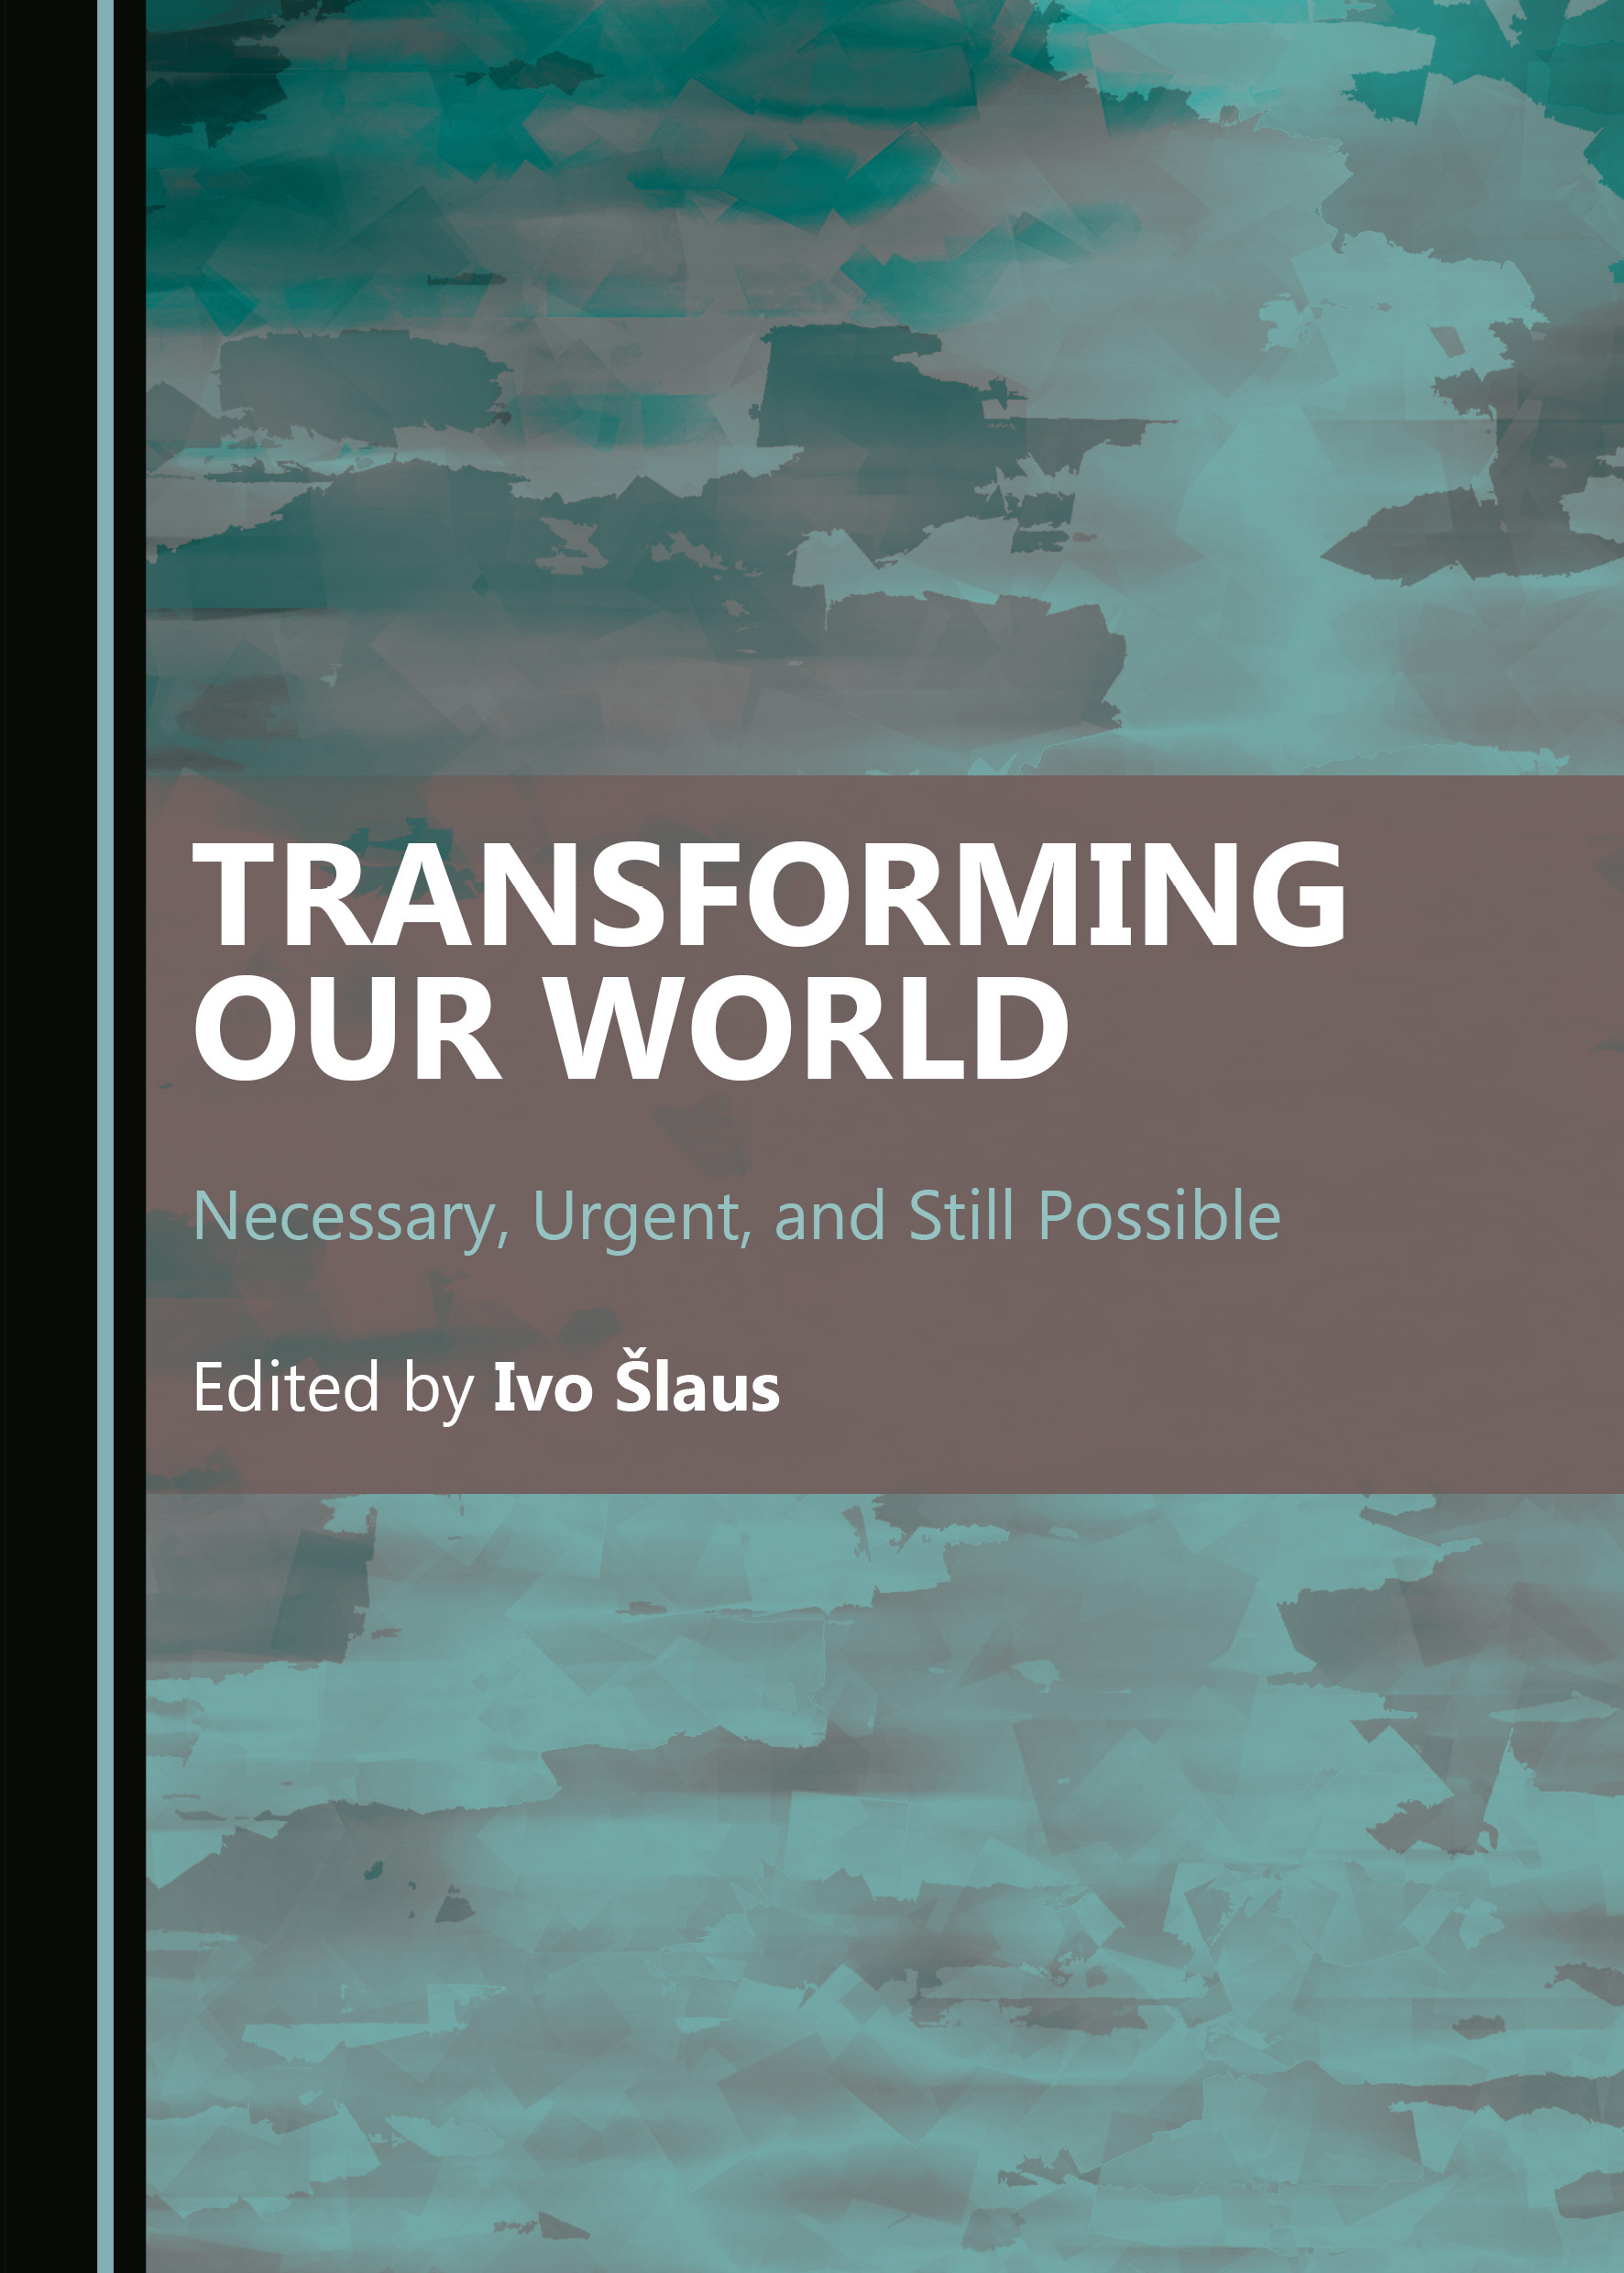 Transforming Our World: Necessary, Urgent, and Still Possible